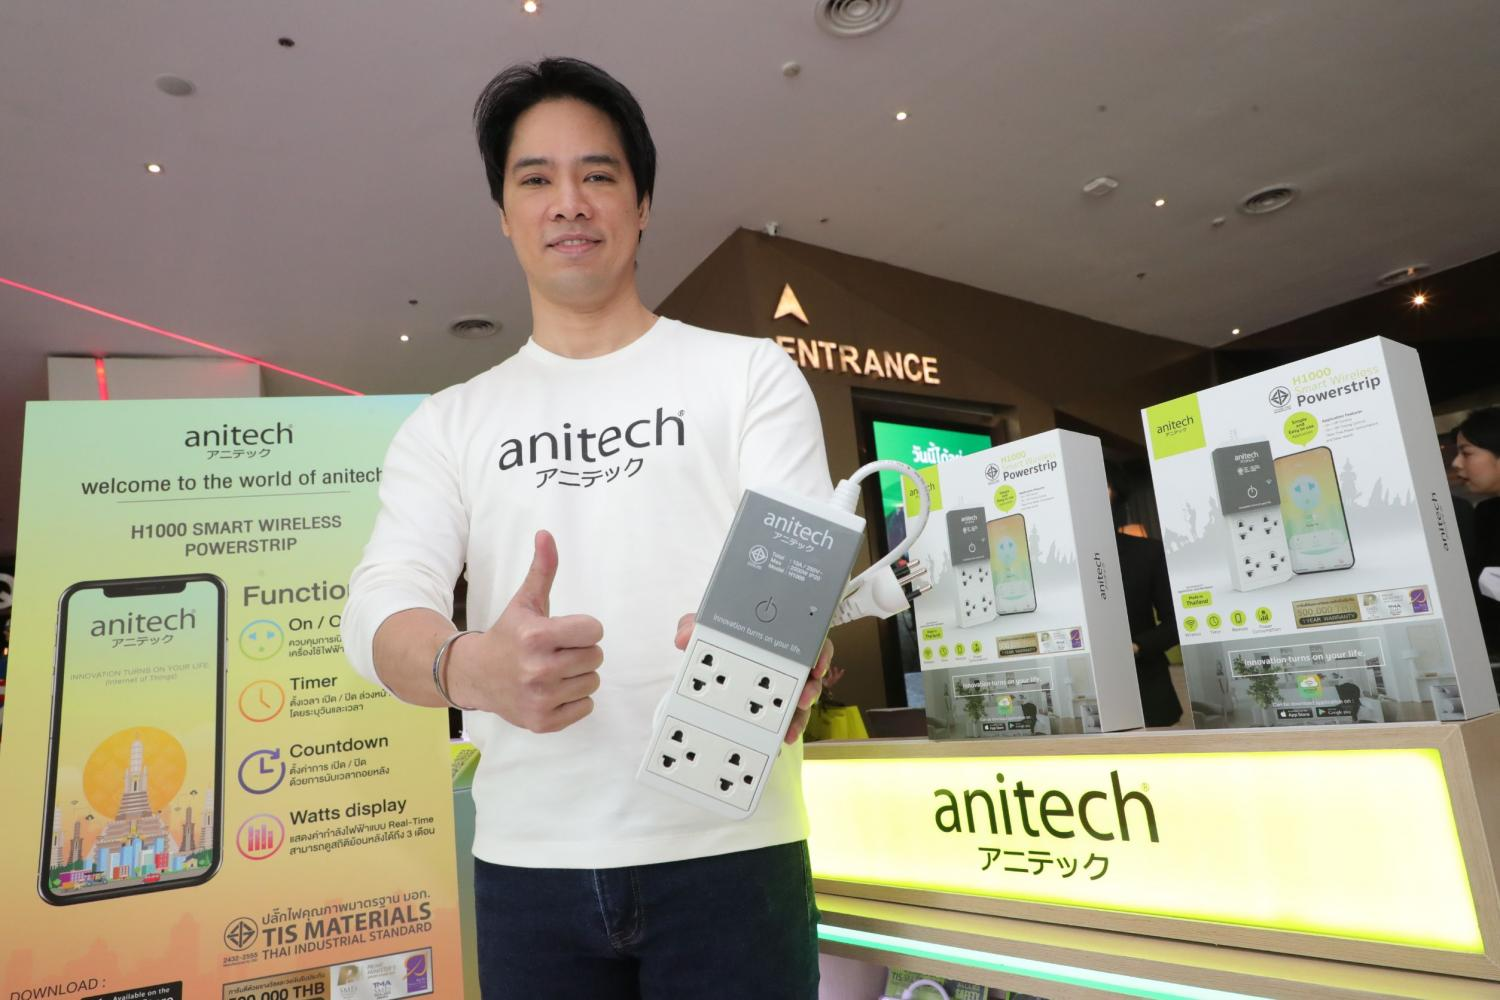 The Anitech smart power strip supports residences and businesses in their adoption of IoT platforms involving sensor systems, says chief executive Thomas Hongpakdee.